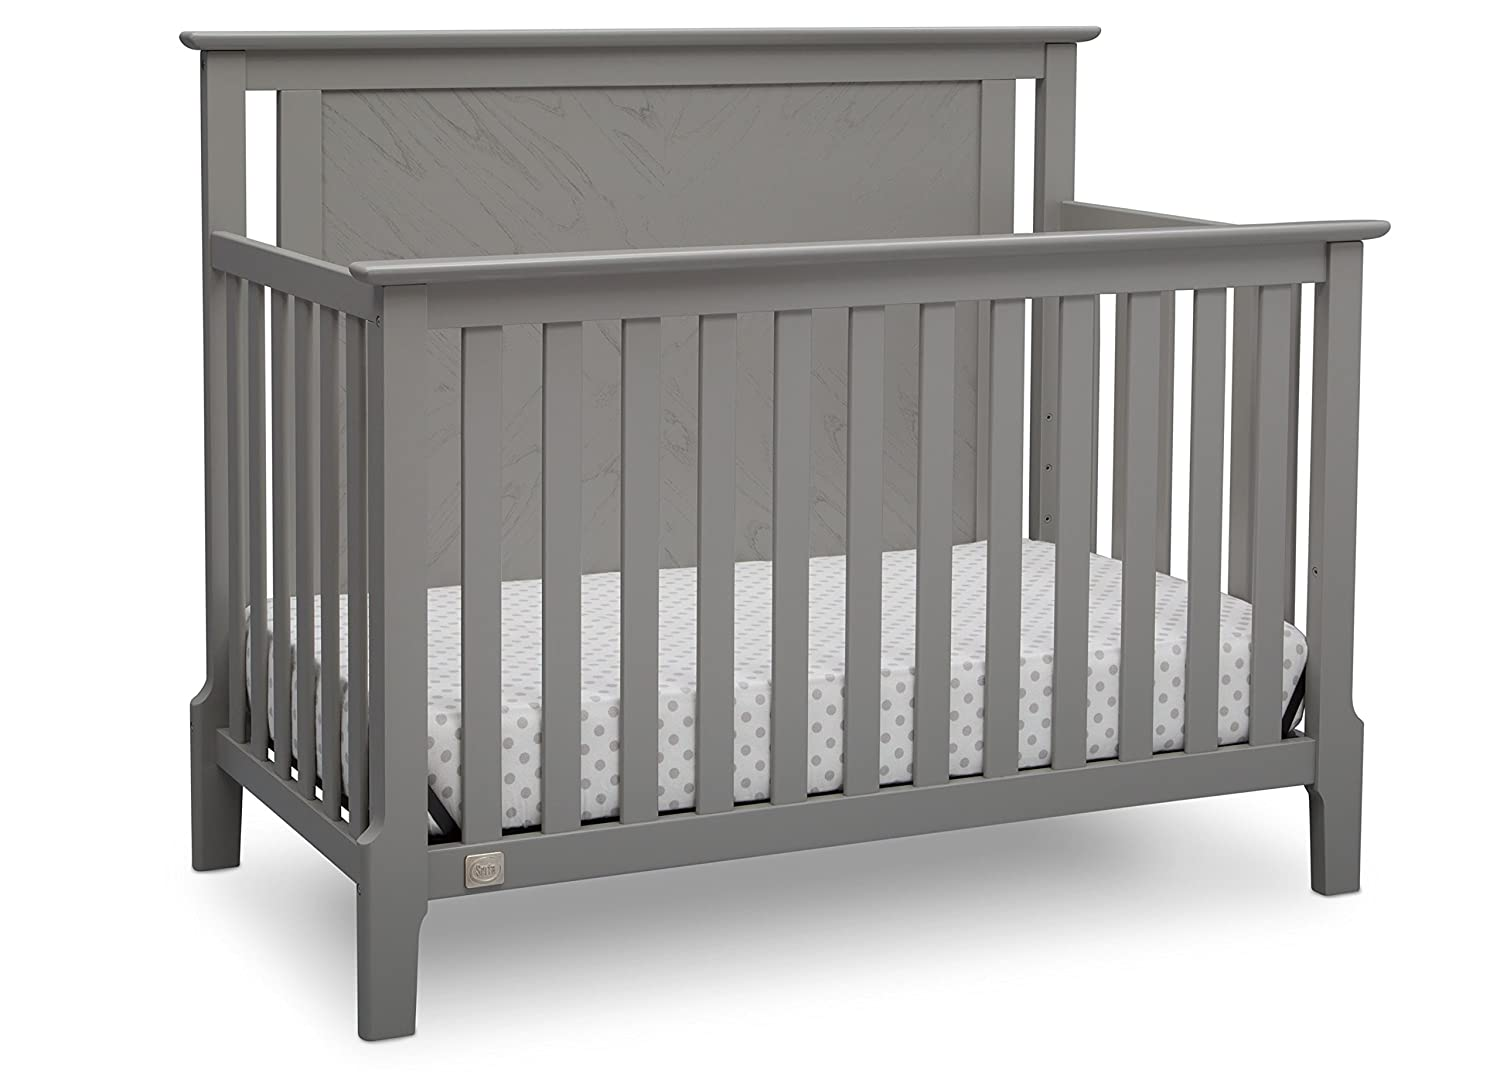 Serta Mid Century Modern Lifestyle 4-in-1 Convertible Baby Crib, Grey